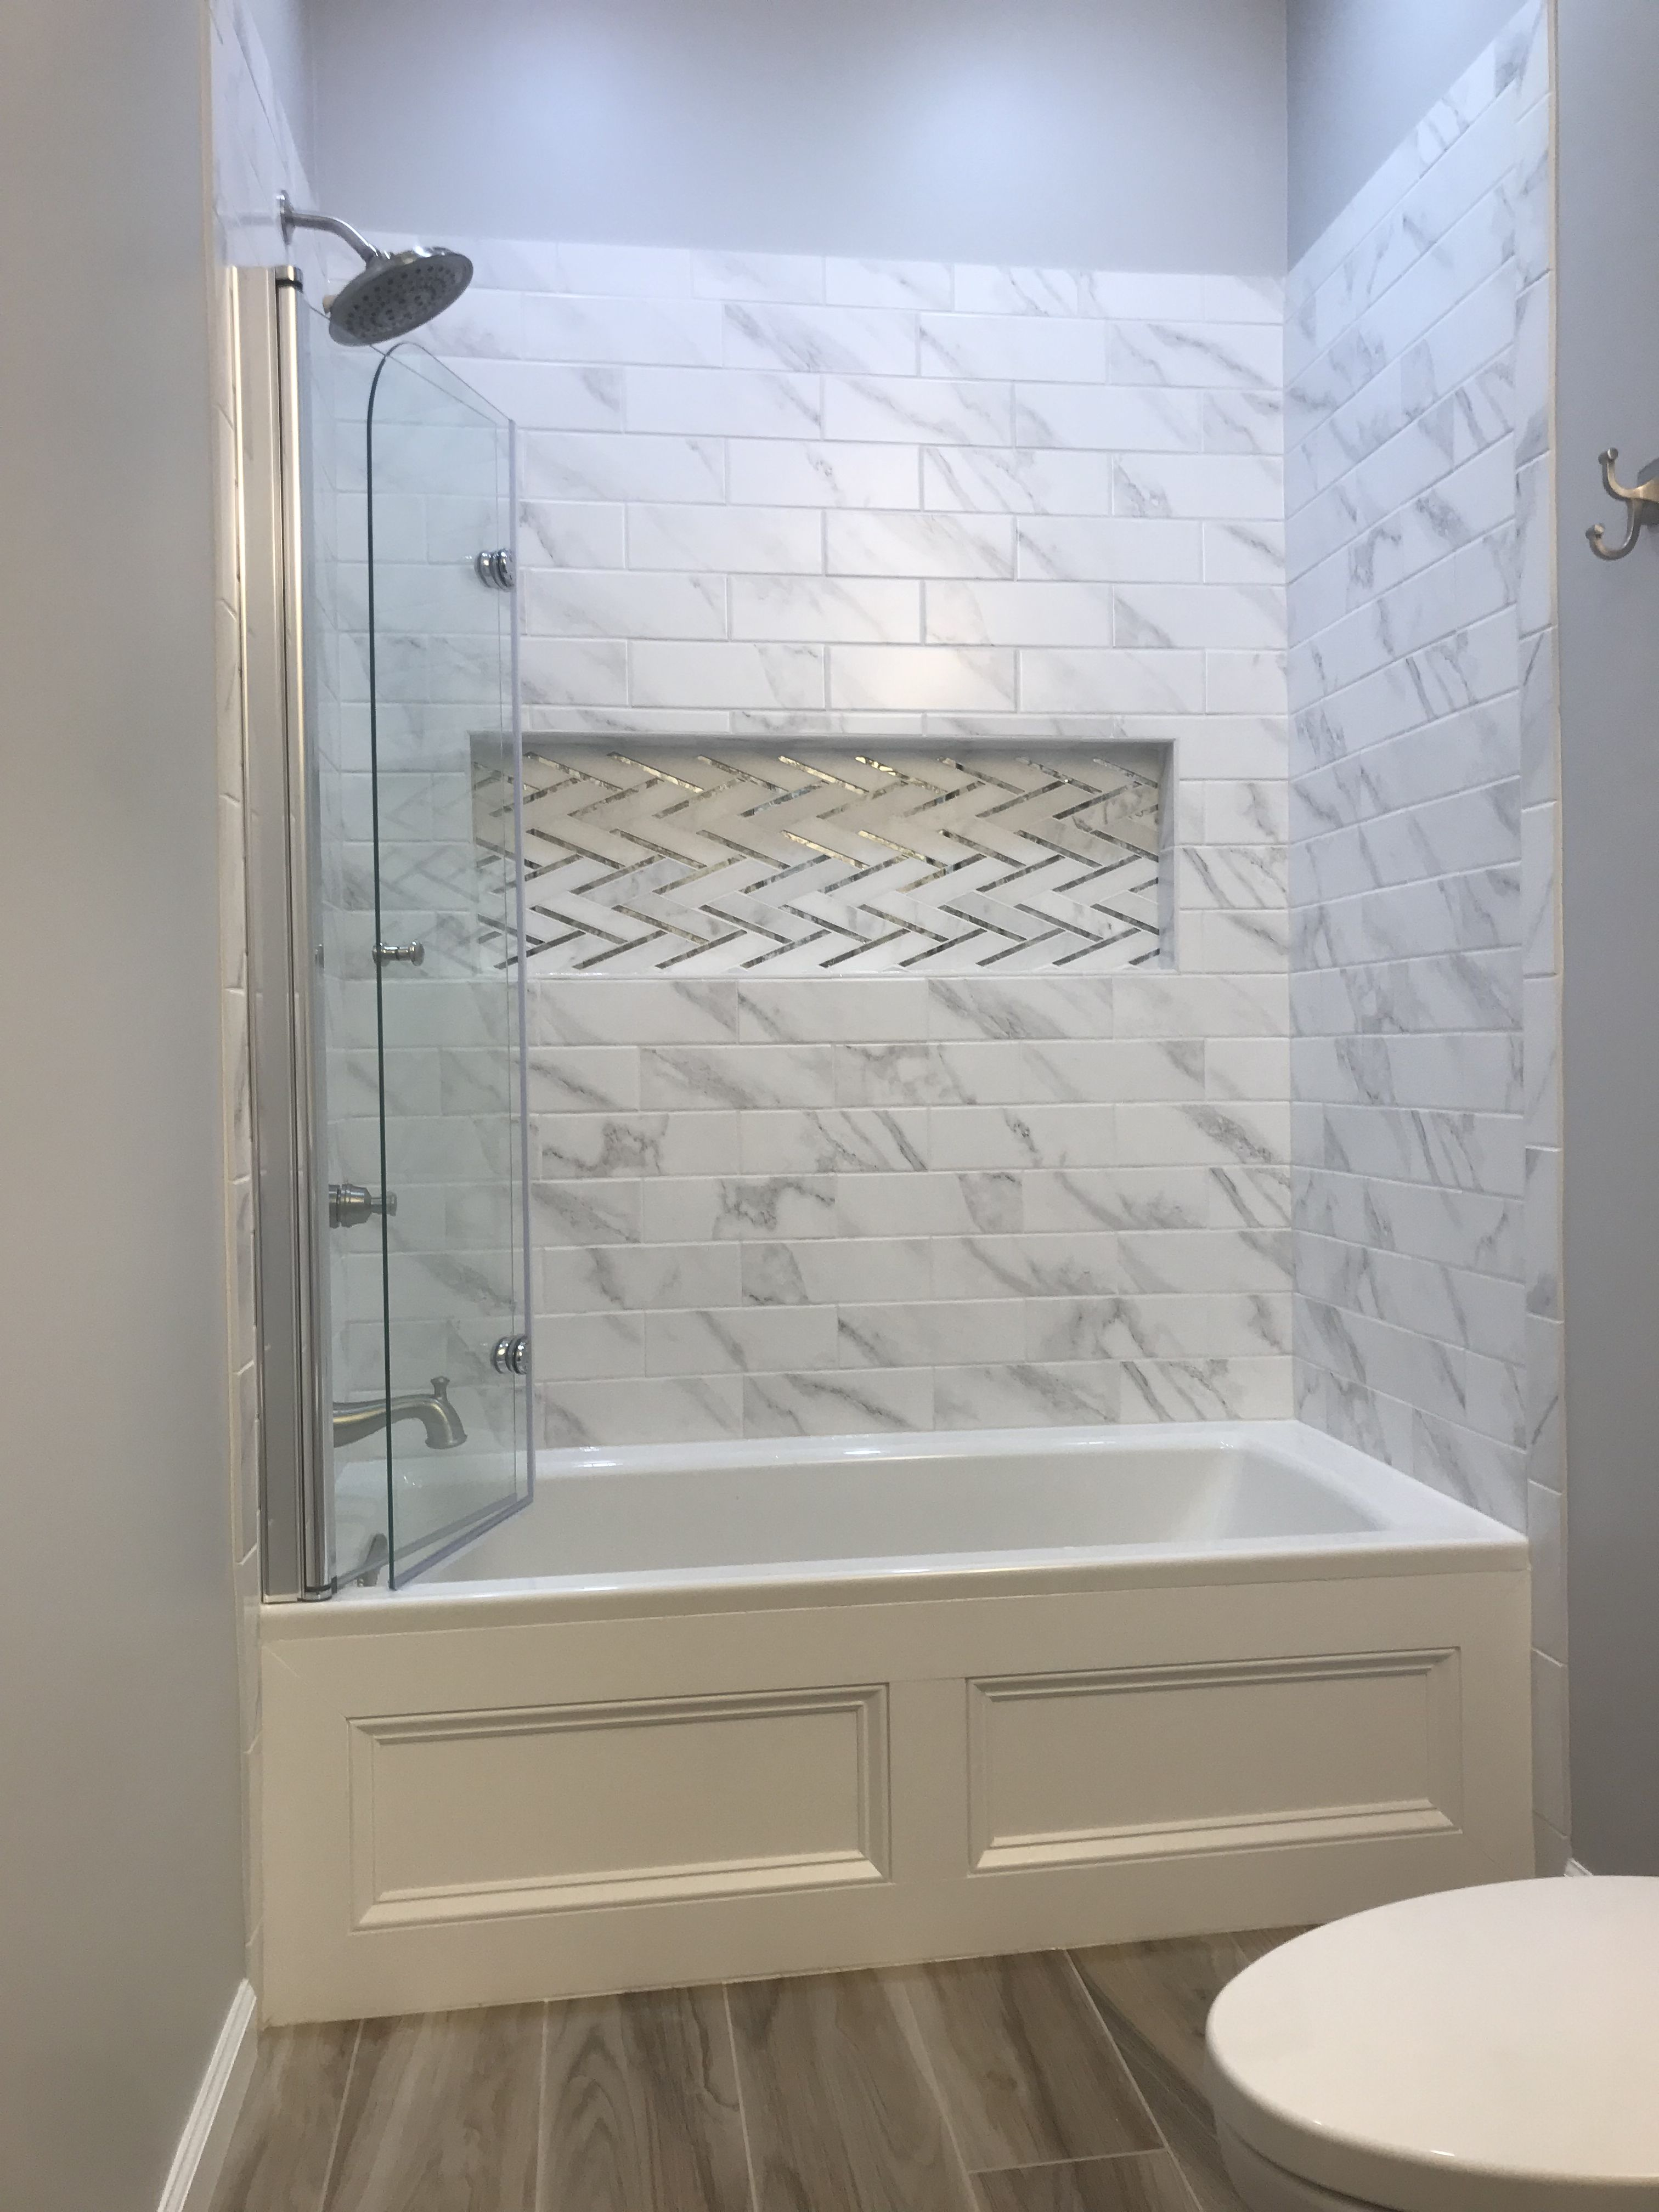 Marble Shower Tub Combo With Glass Door Bathroom Renovation Diy Bathroom Remodel Shower Tub Doors